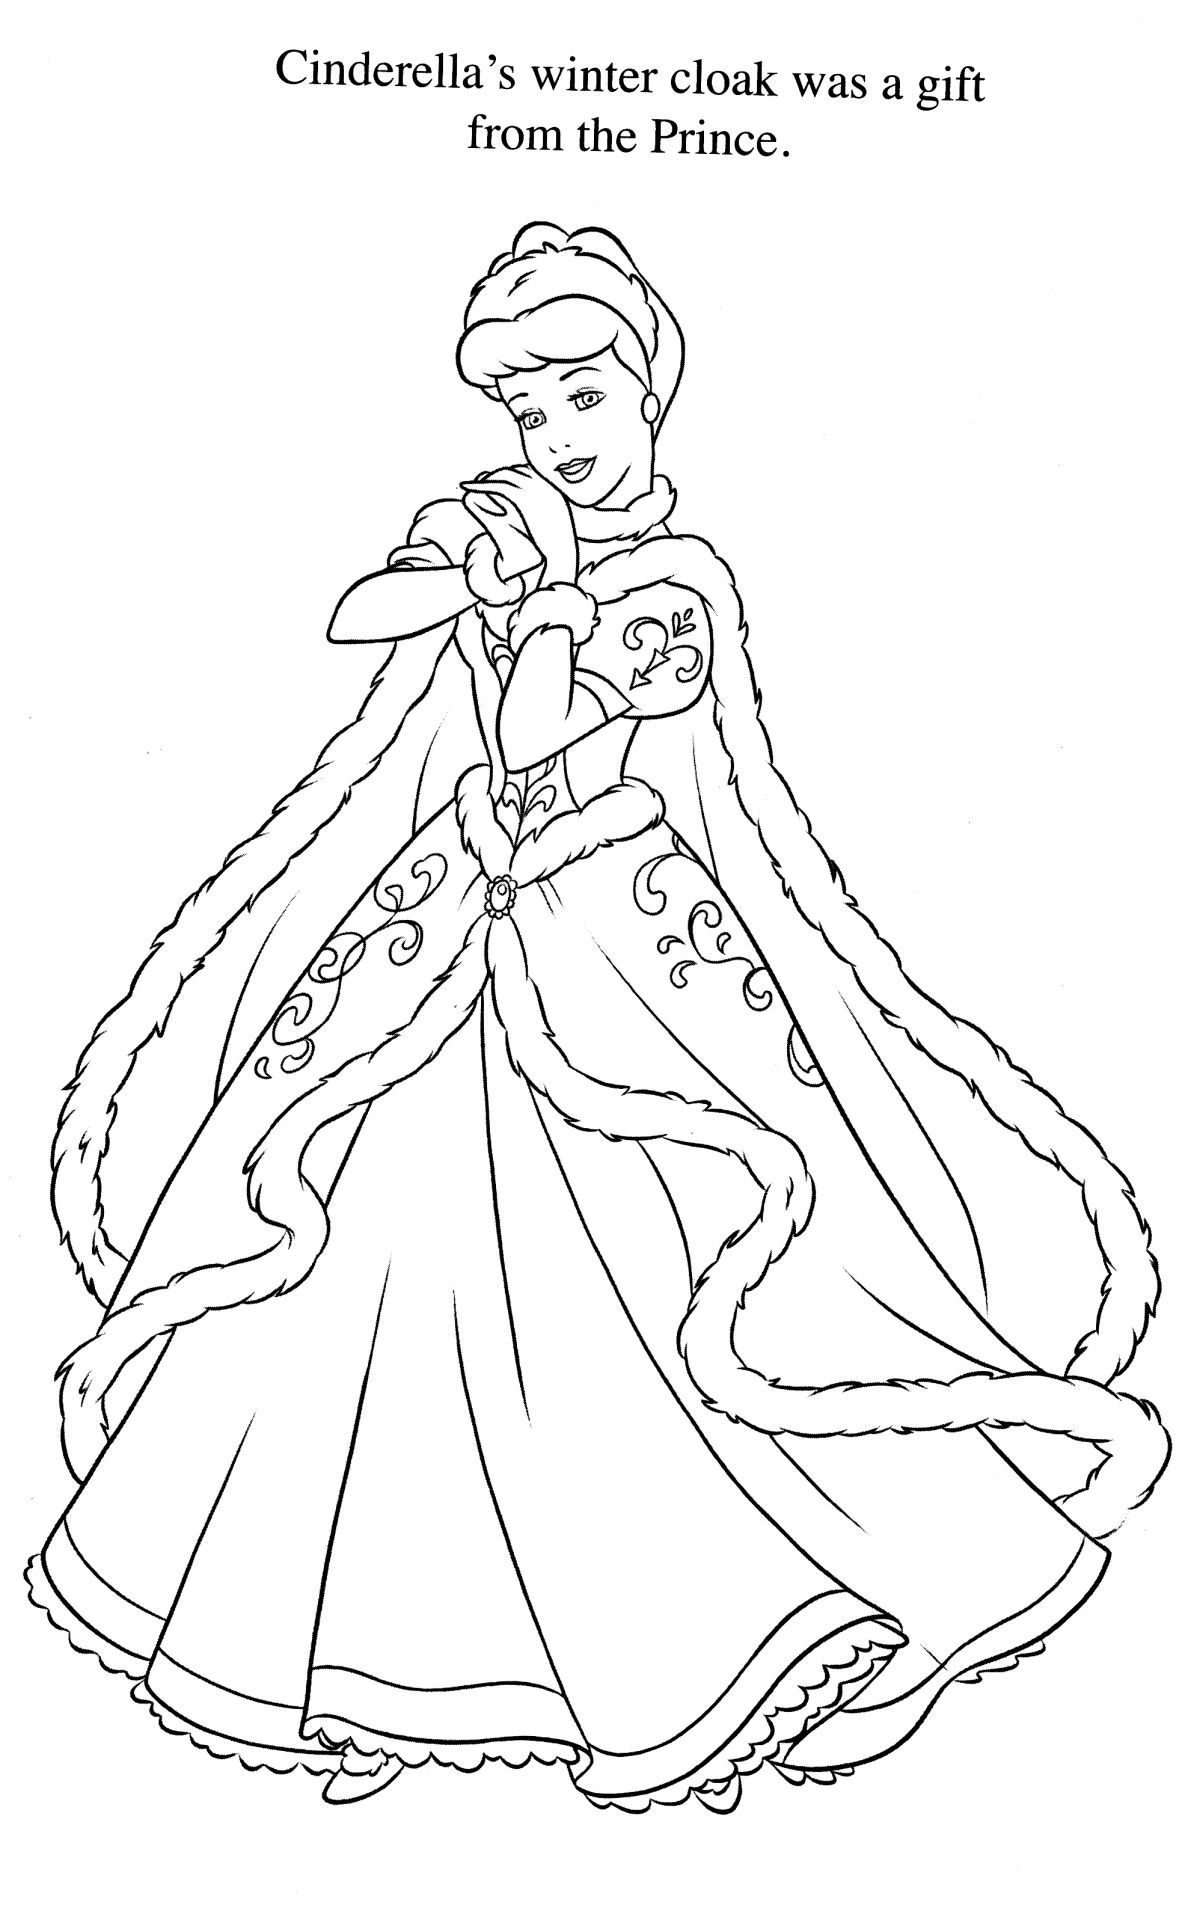 Disney Coloring Pages Disney Princess Coloring Pages Princess Coloring Pages Disney Coloring Pages